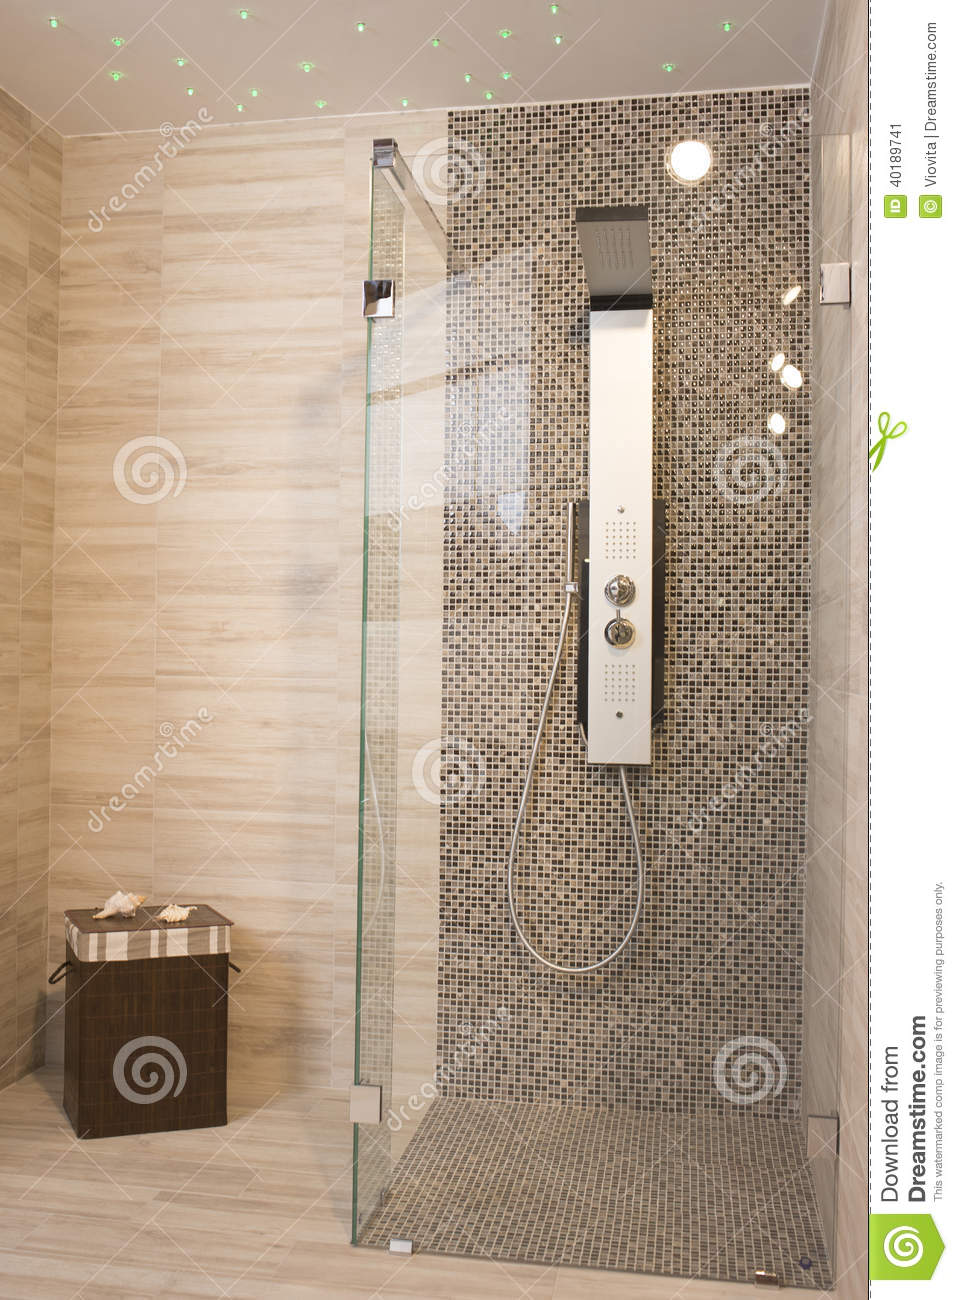 Douche moderne photo stock image 40189741 for Photos de douche moderne